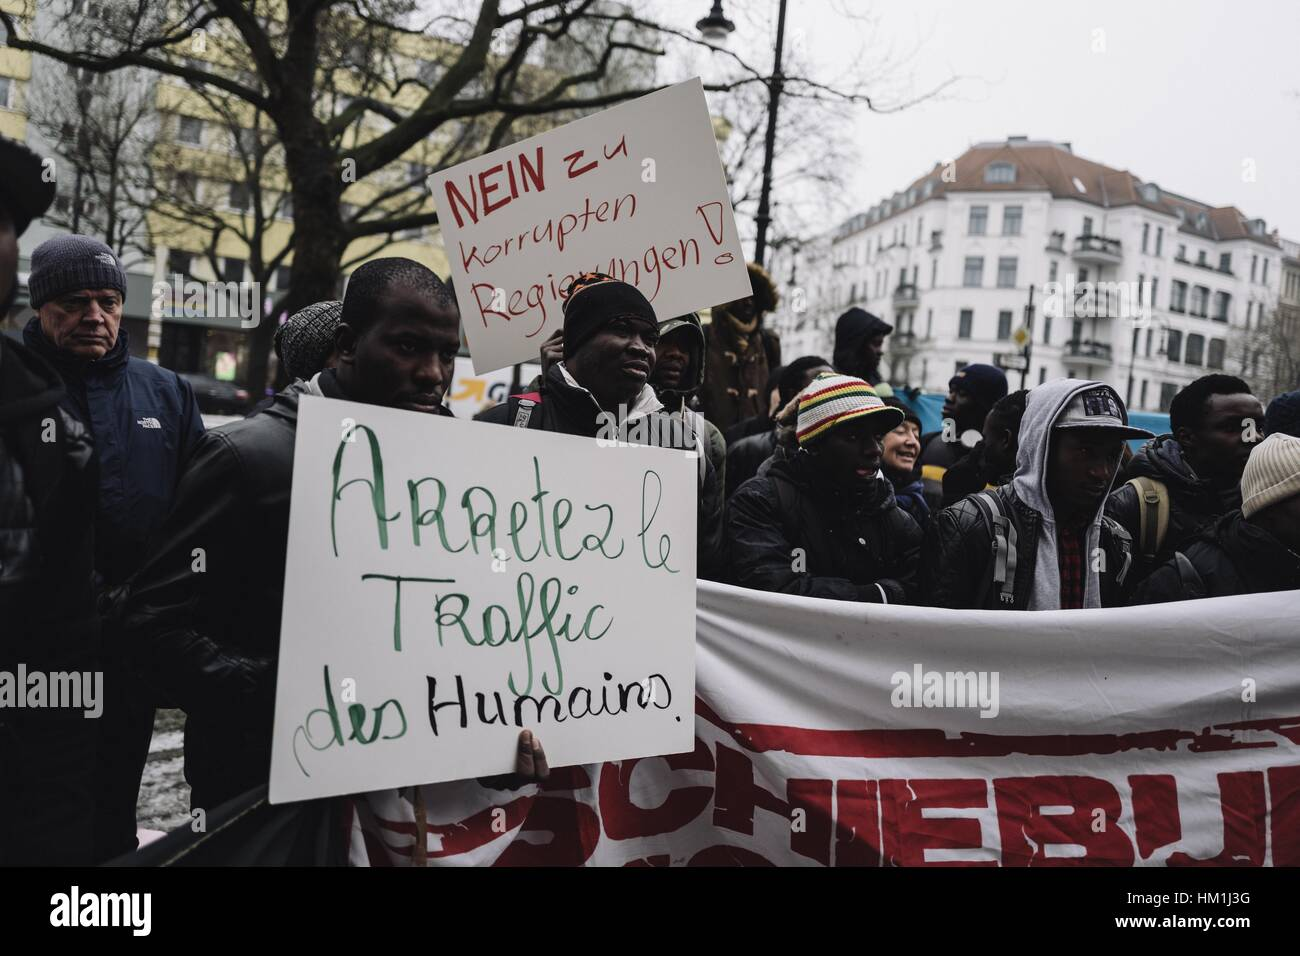 Berlin, Germany. 31st Jan, 2017. Around 100 demonstrators rally in front of the Malian Embassy in Berlin against - Stock Image